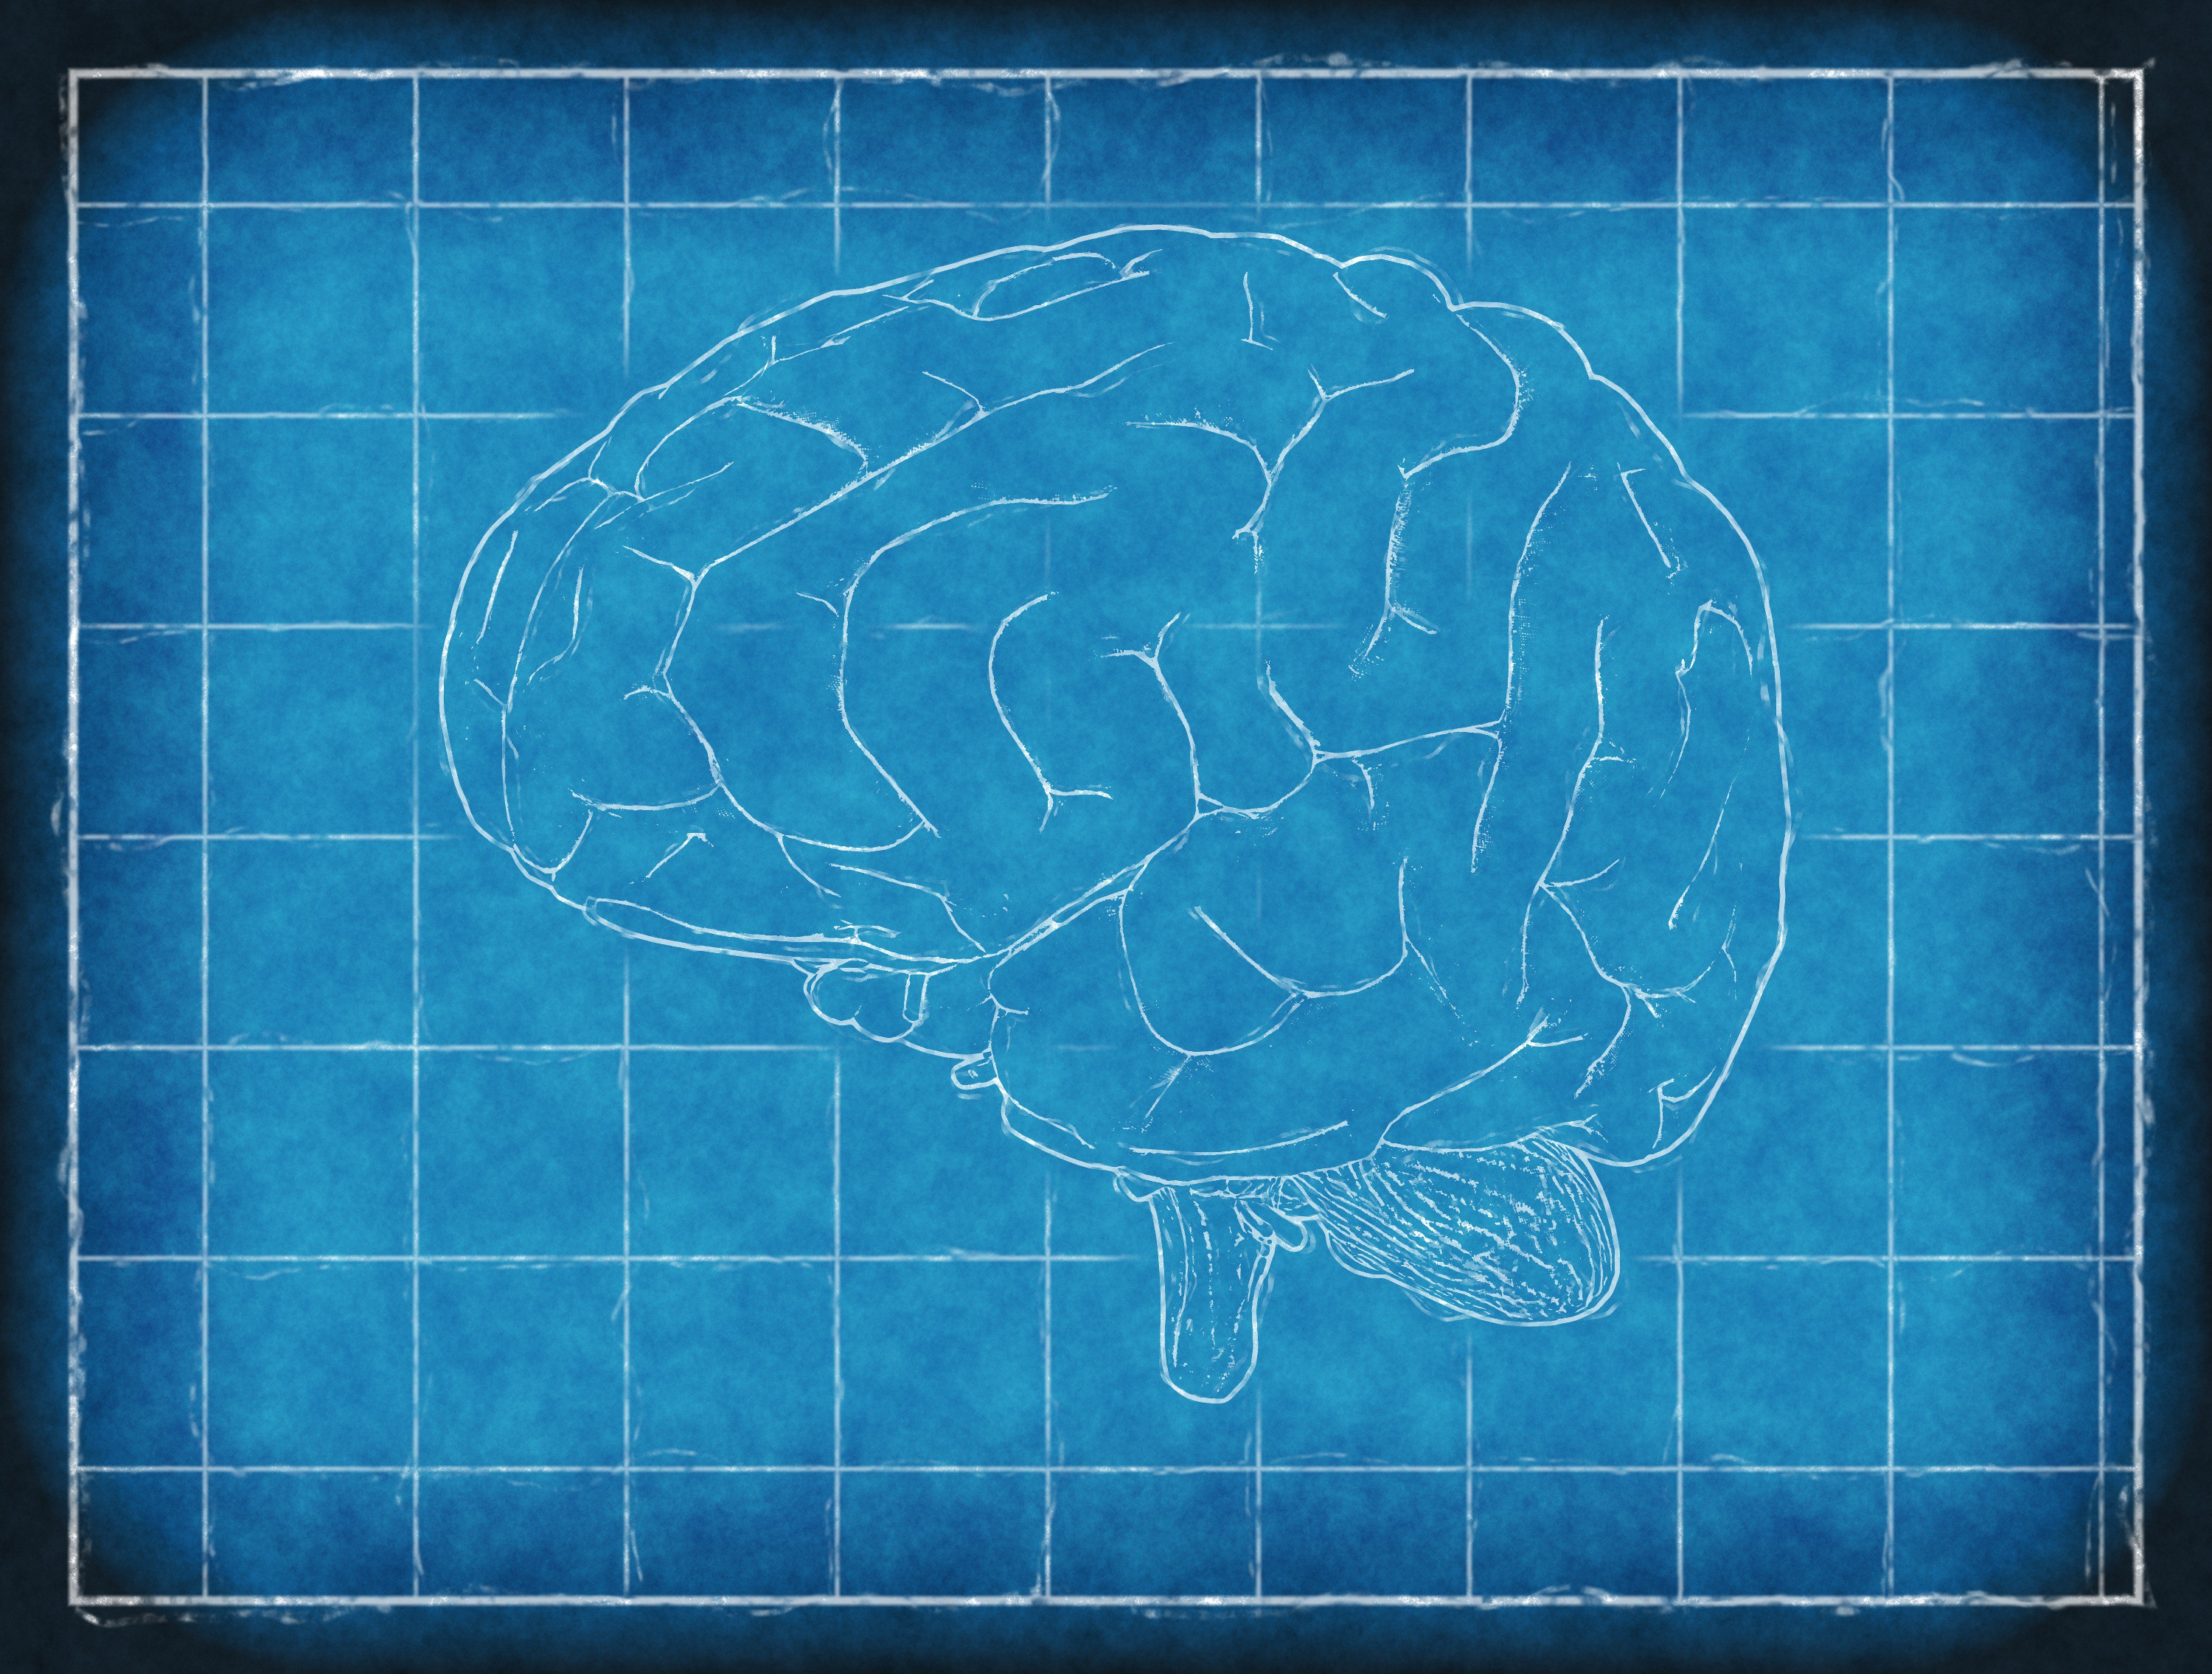 Merging with AI: How to Make a Brain-Computer Interface to